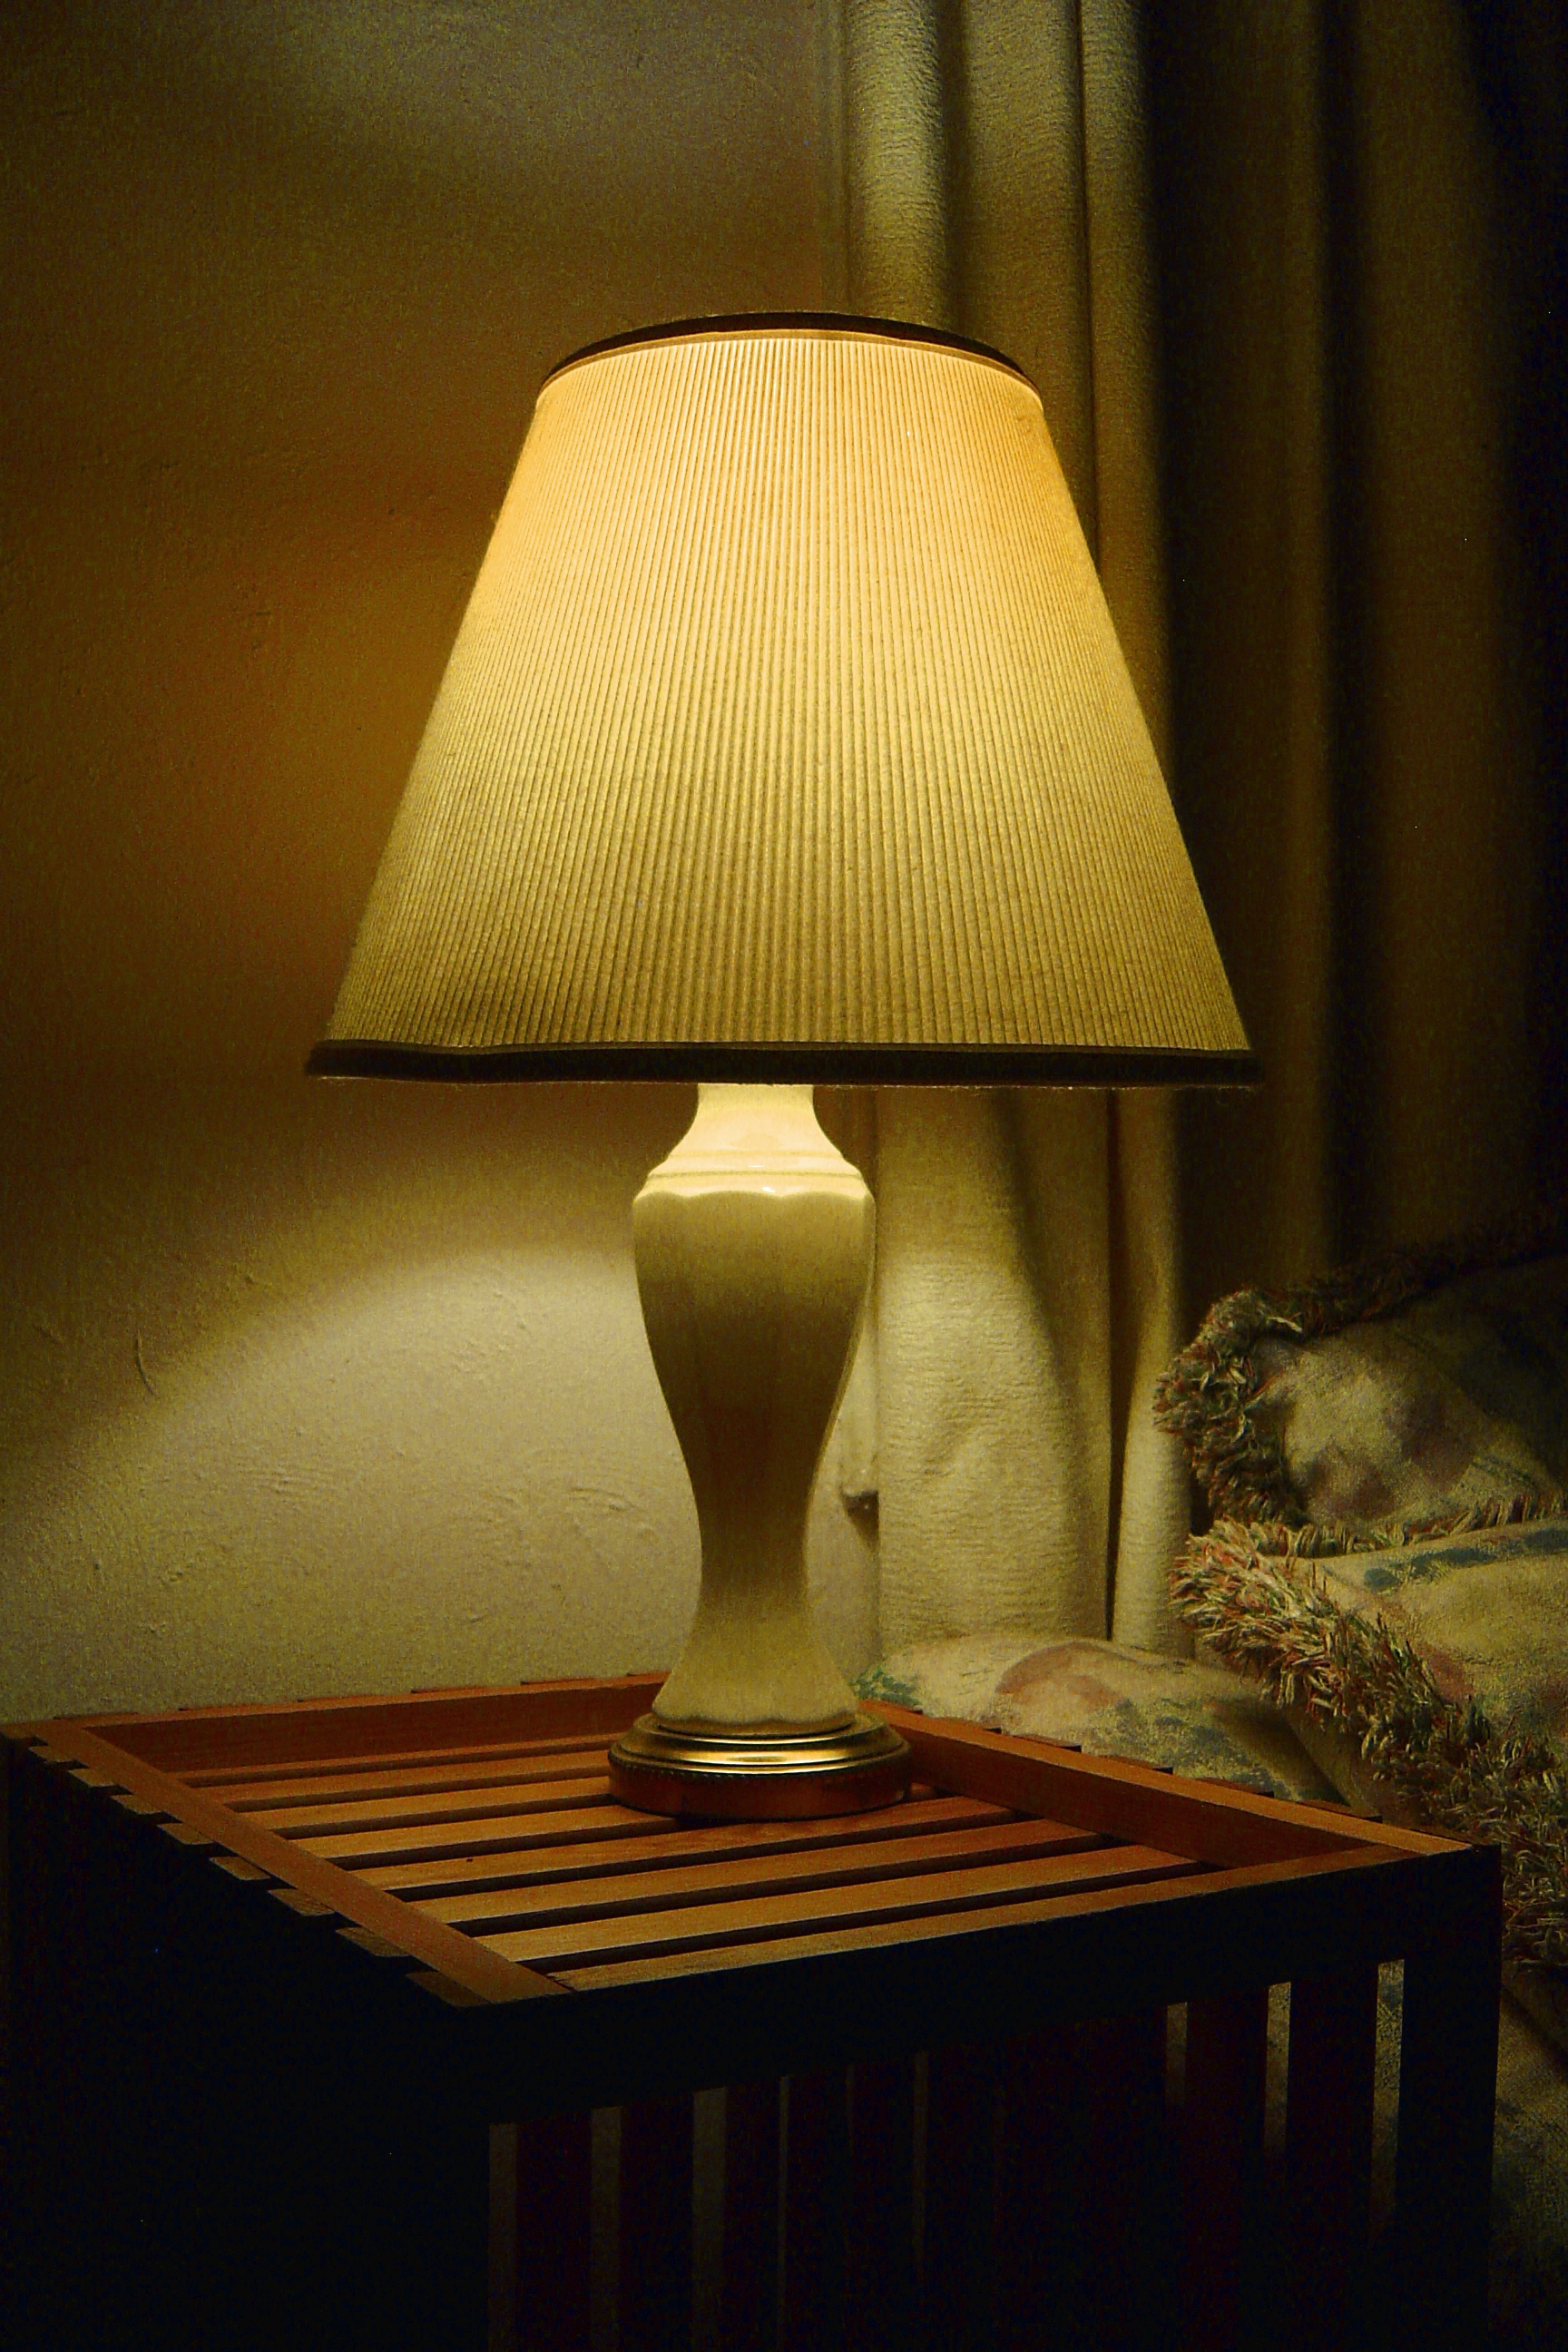 Living Room Lamp Picture | Free Photograph | Photos Public ...